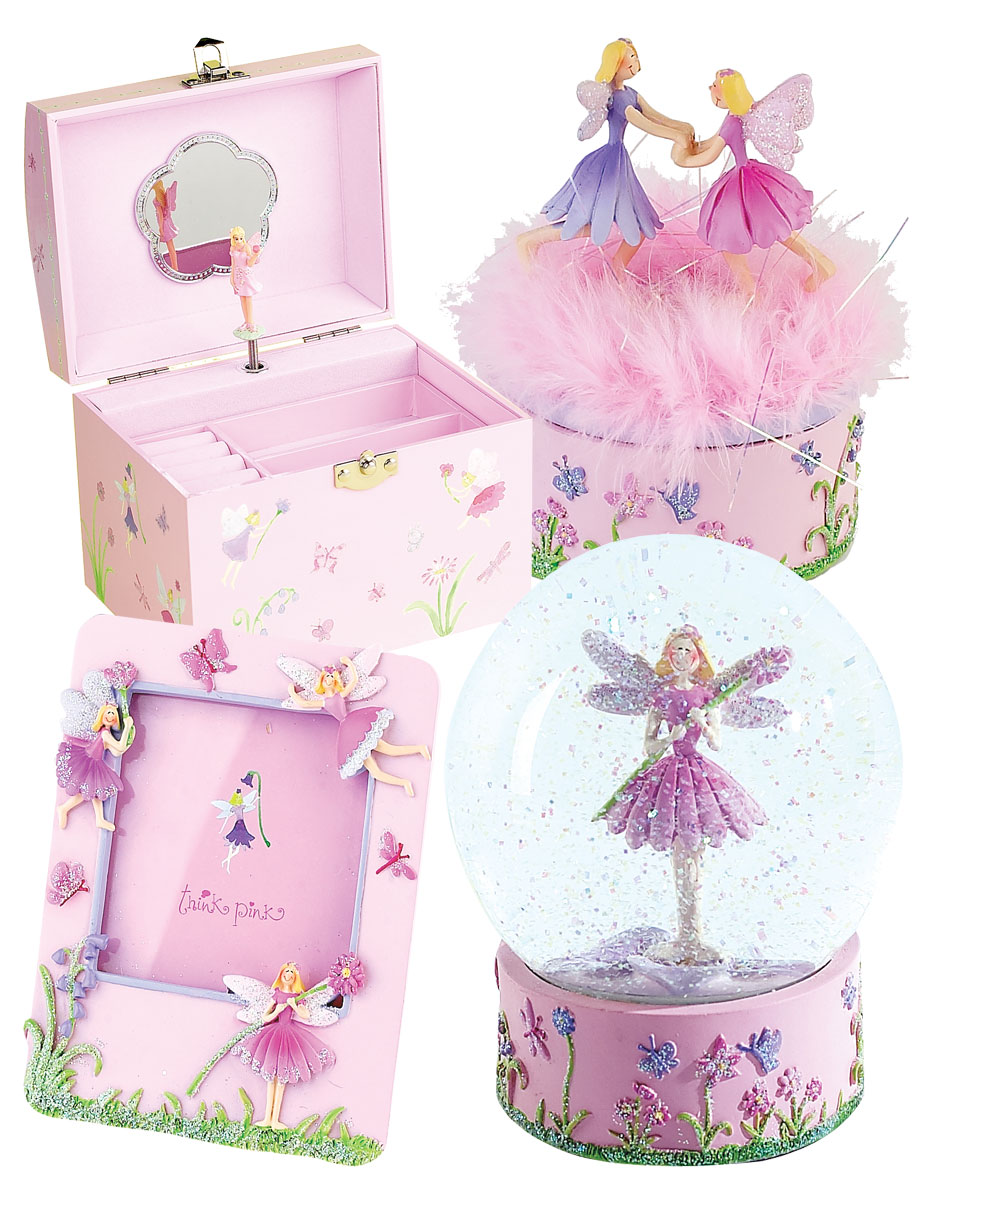 fairygardencollection.jpg